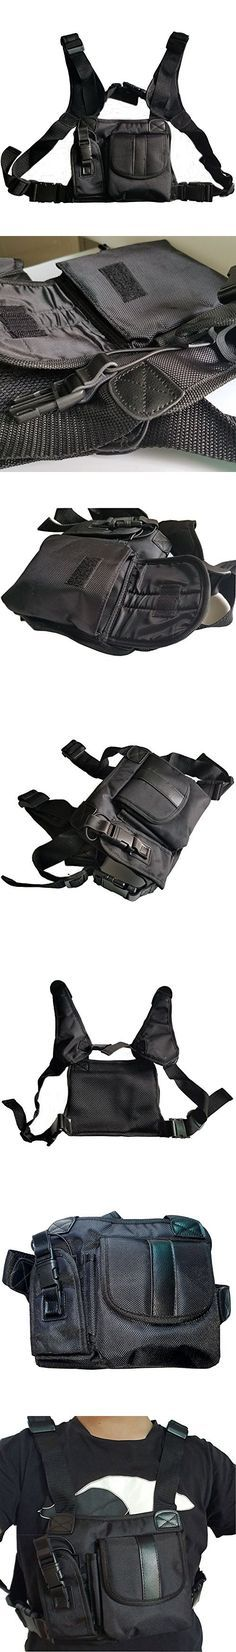 Lewong Universal Hands Free Chest Harness Bag Holsterfor Two Way Radio ( Rescue Essentials) (Leather Black)